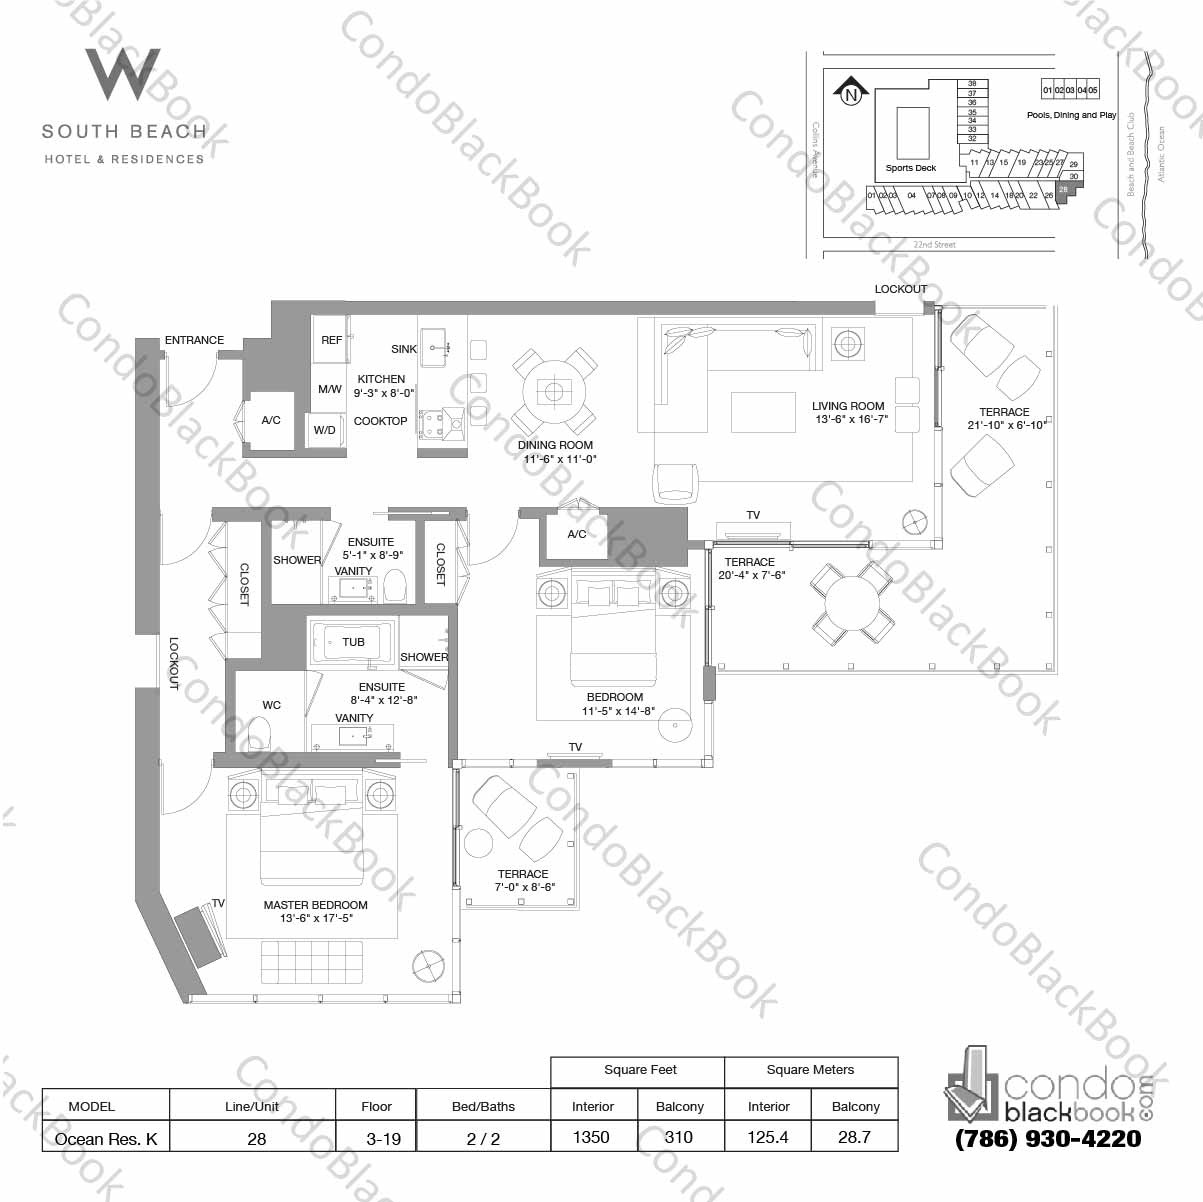 Floor plan for W South Beach South Beach Miami Beach, model Ocean Res. K, line 28, 2 / 2 bedrooms, 1350 sq ft